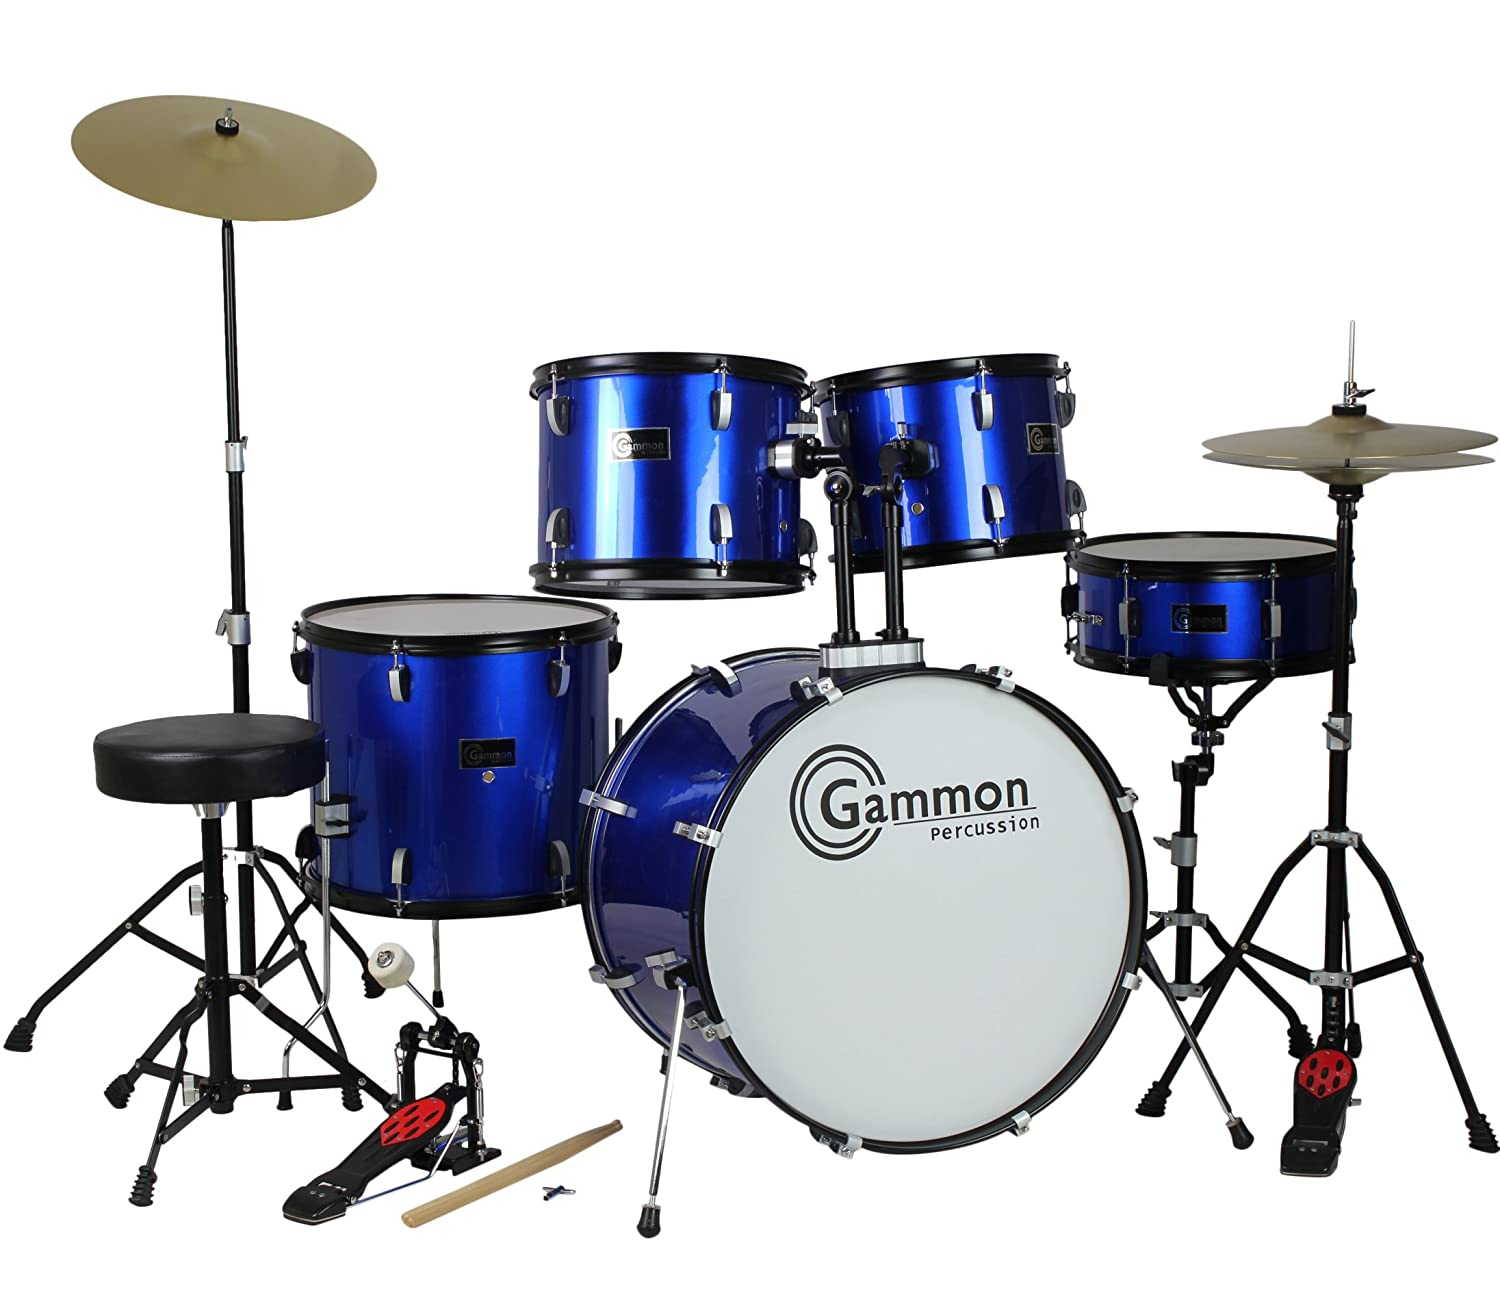 Drum Set Full Size Adult 5-piece Complete Metallic Blue with Cymbals Stands Stool Sticks Gammon Percussion MDWJ7BLUE